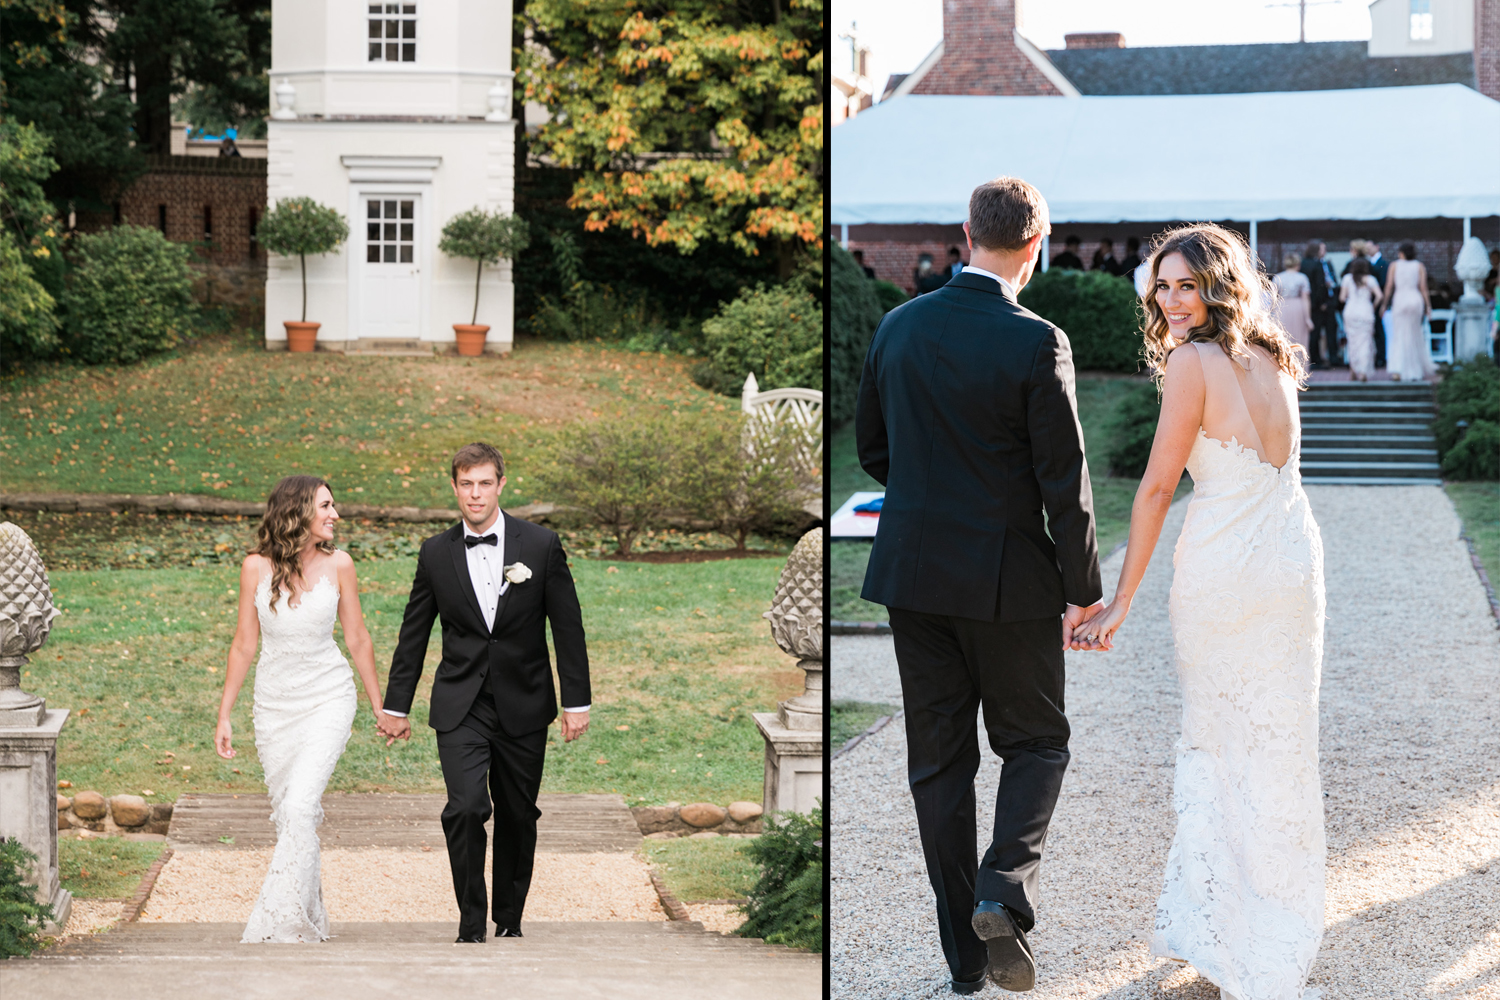 image of bride and groom at William Paca house wedding reception entrance